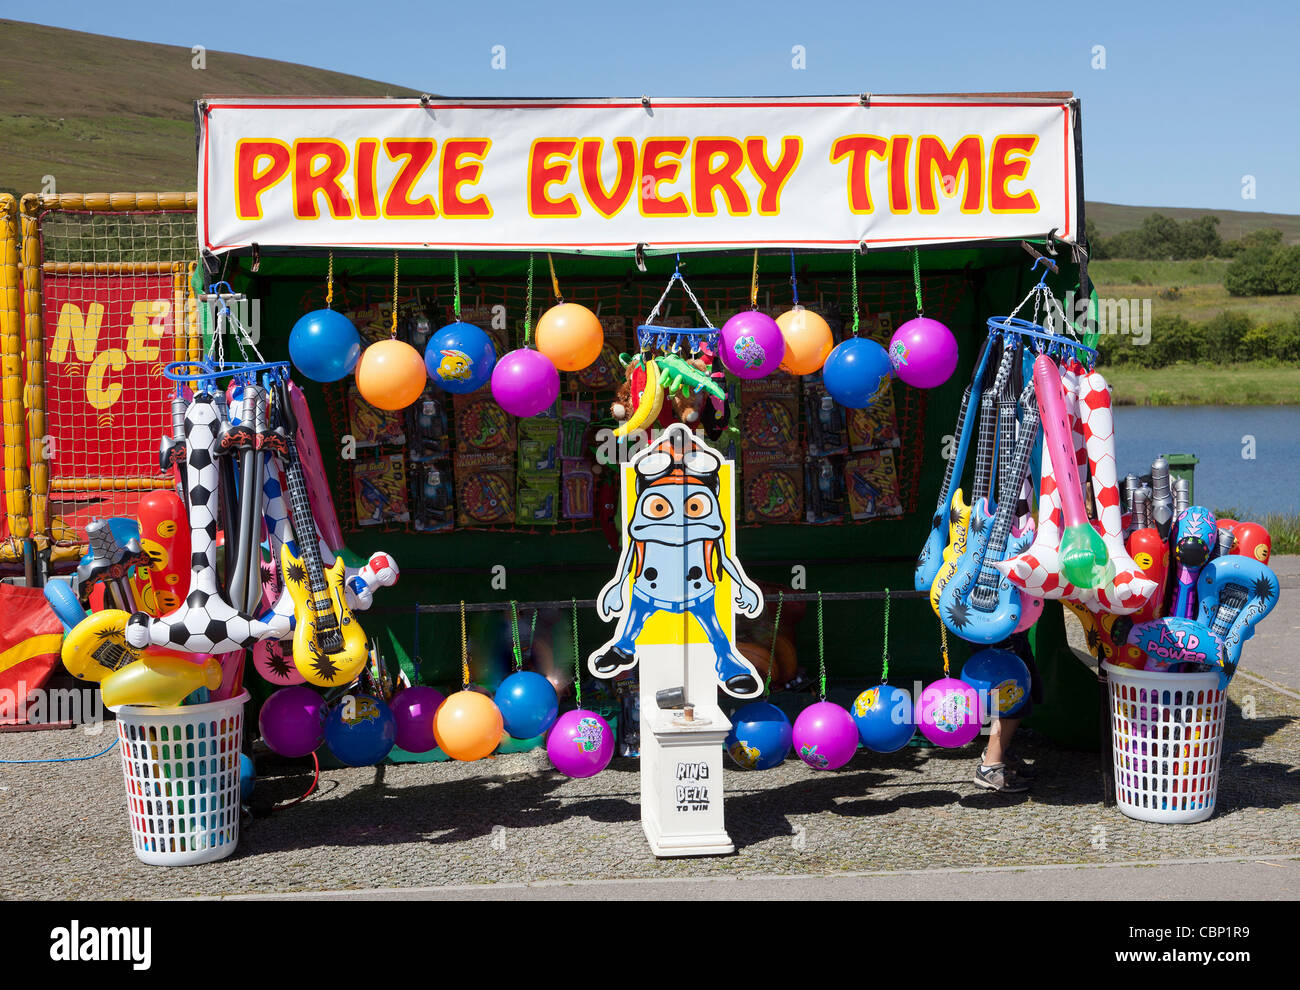 Prize Every Time stall at Garn Lakes Country Fayre Blaenavon Wales UK - Stock Image